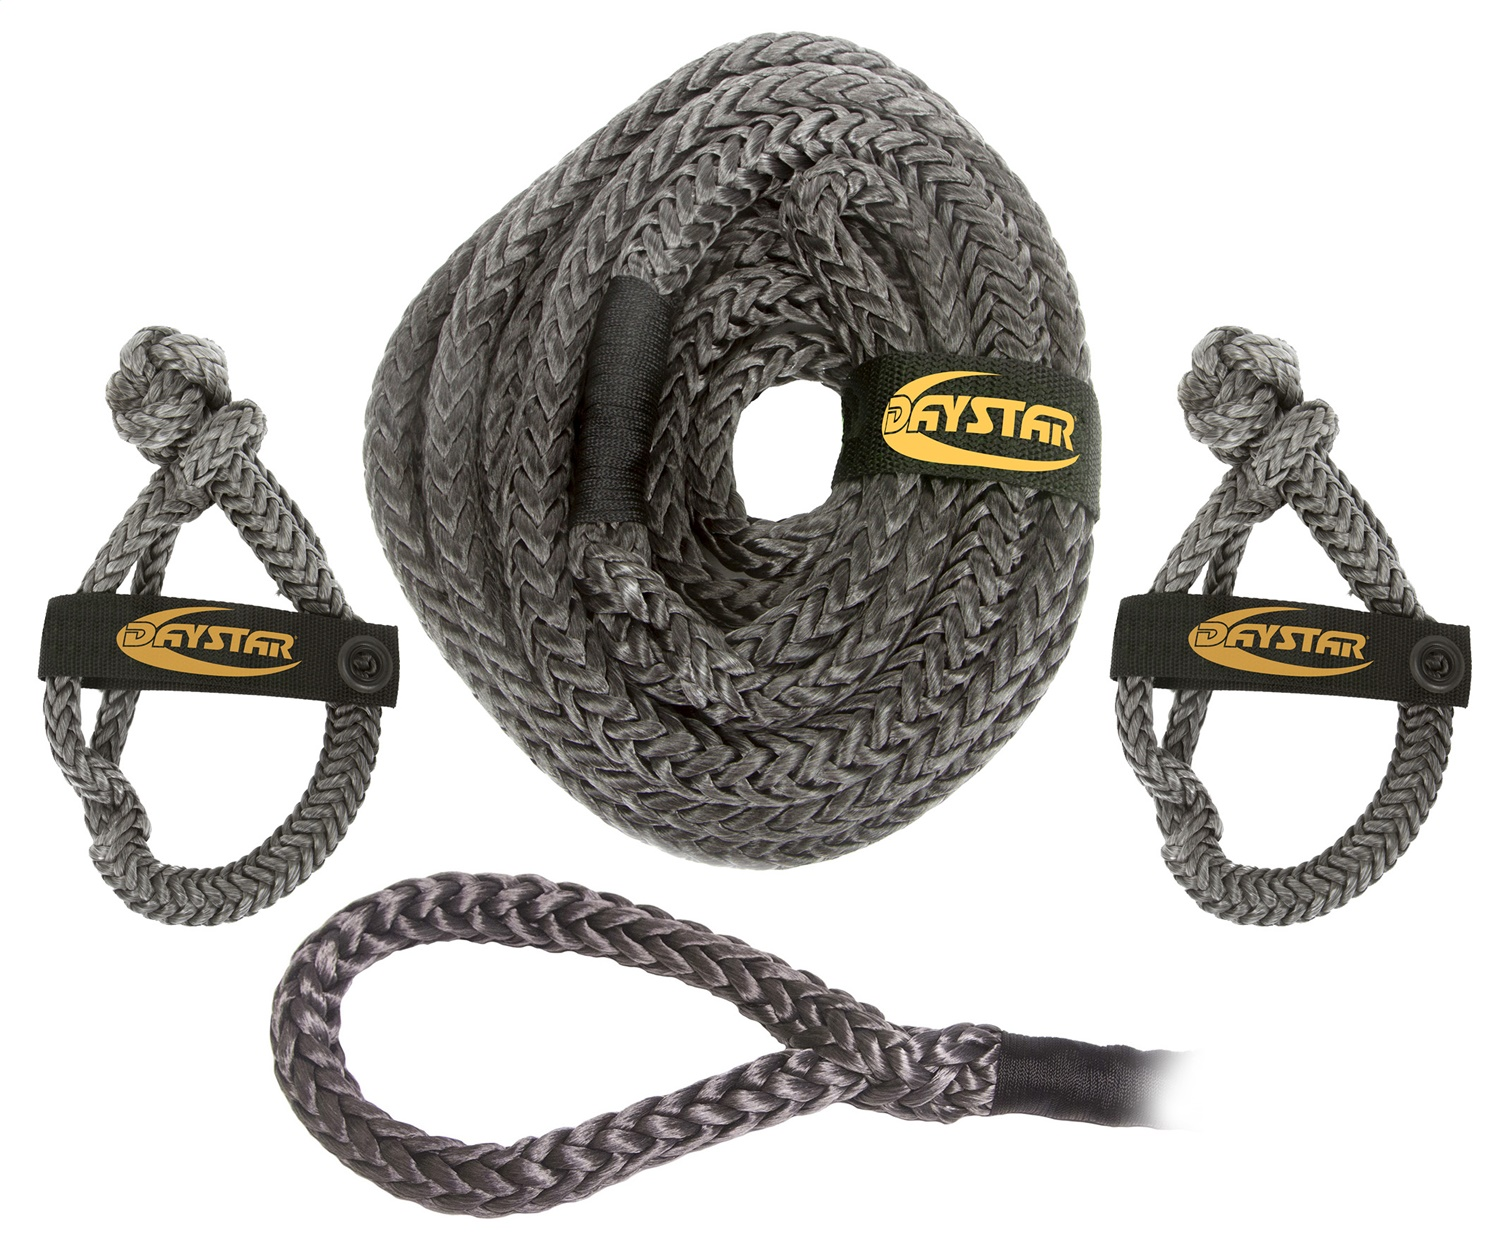 Daystar KU10305BK Rope And Shackles Kit